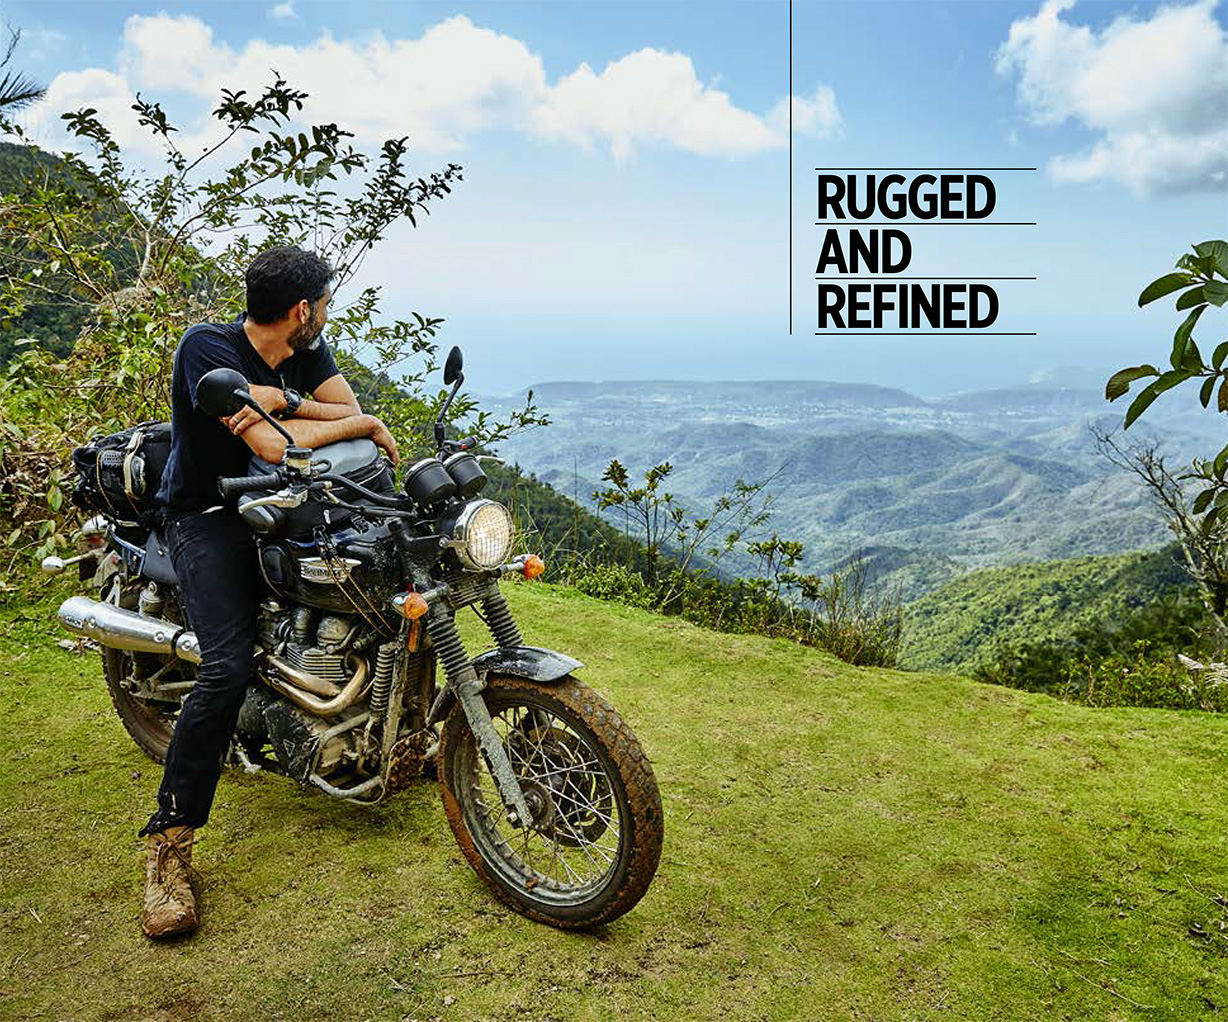 Rugged and Refined